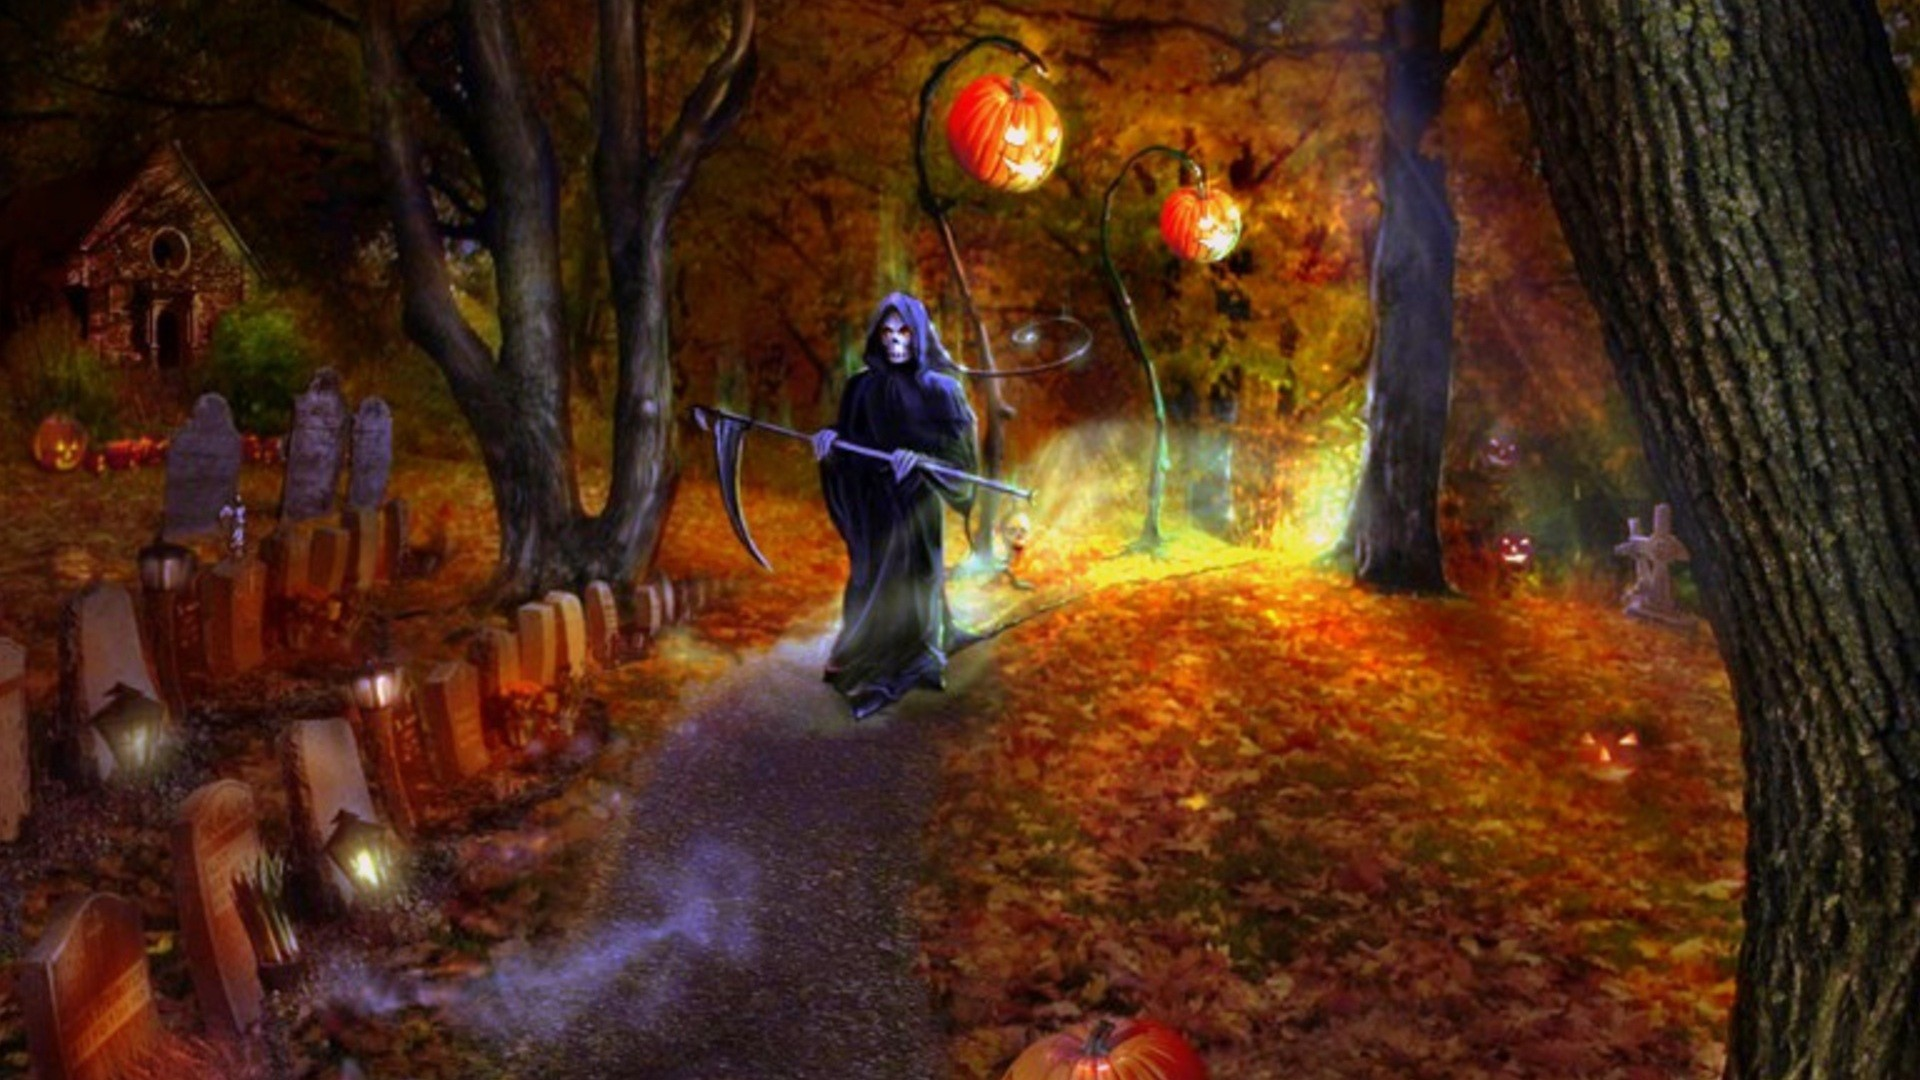 Scary Halloween Wallpapers and Screensavers 58 images 1920x1080